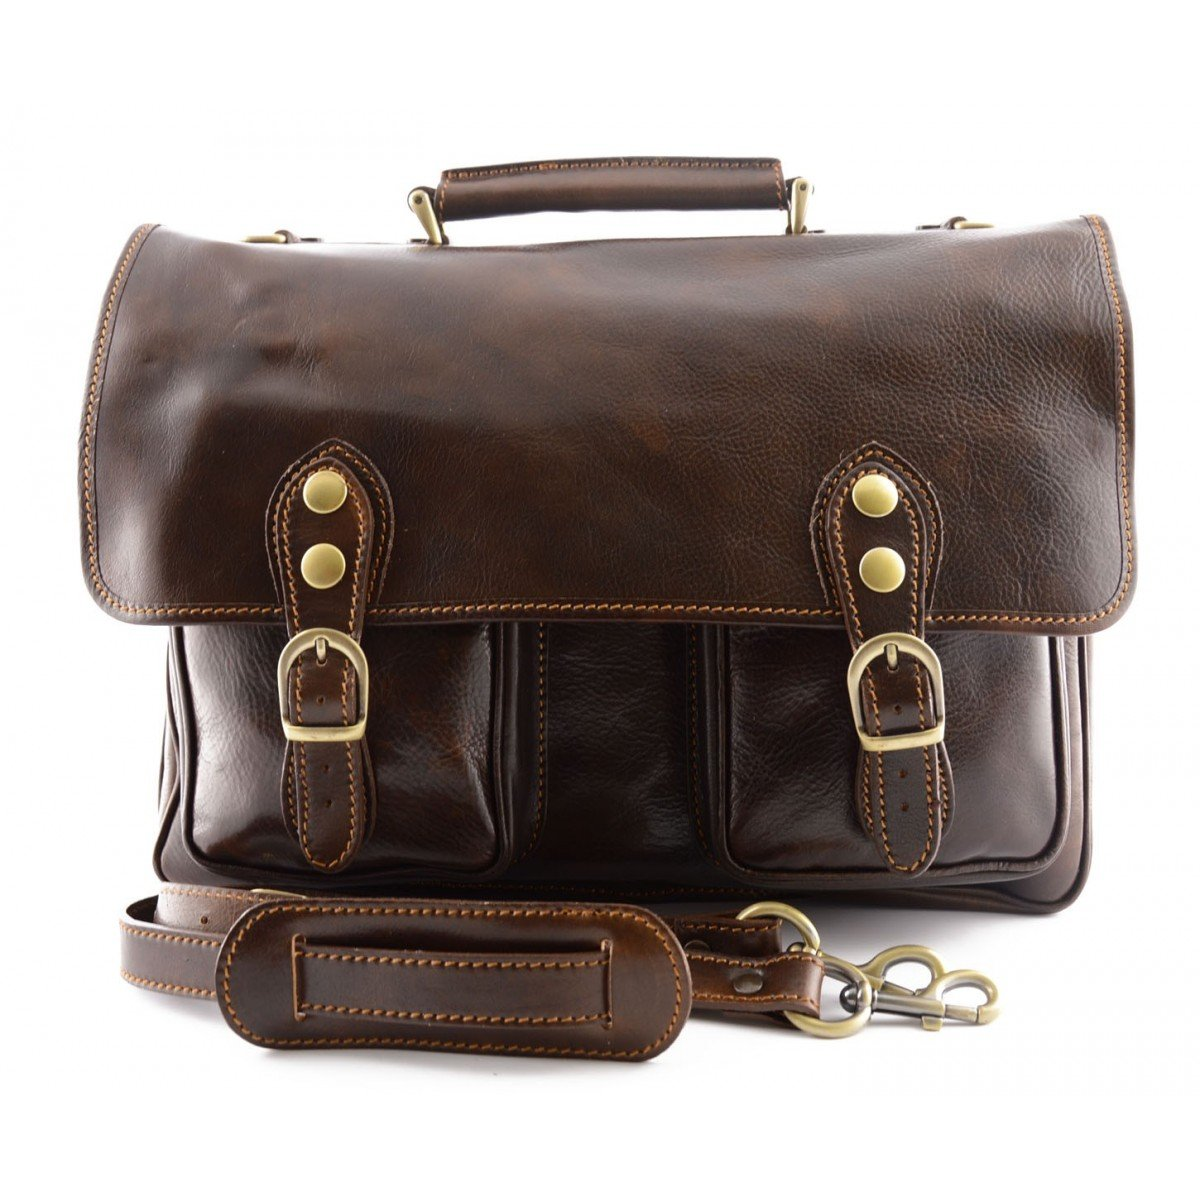 Made In Italy Business Briefcase In Genuine Leather 2 Compartments Color Dark Brown - Business Bag   B017SE7FEE